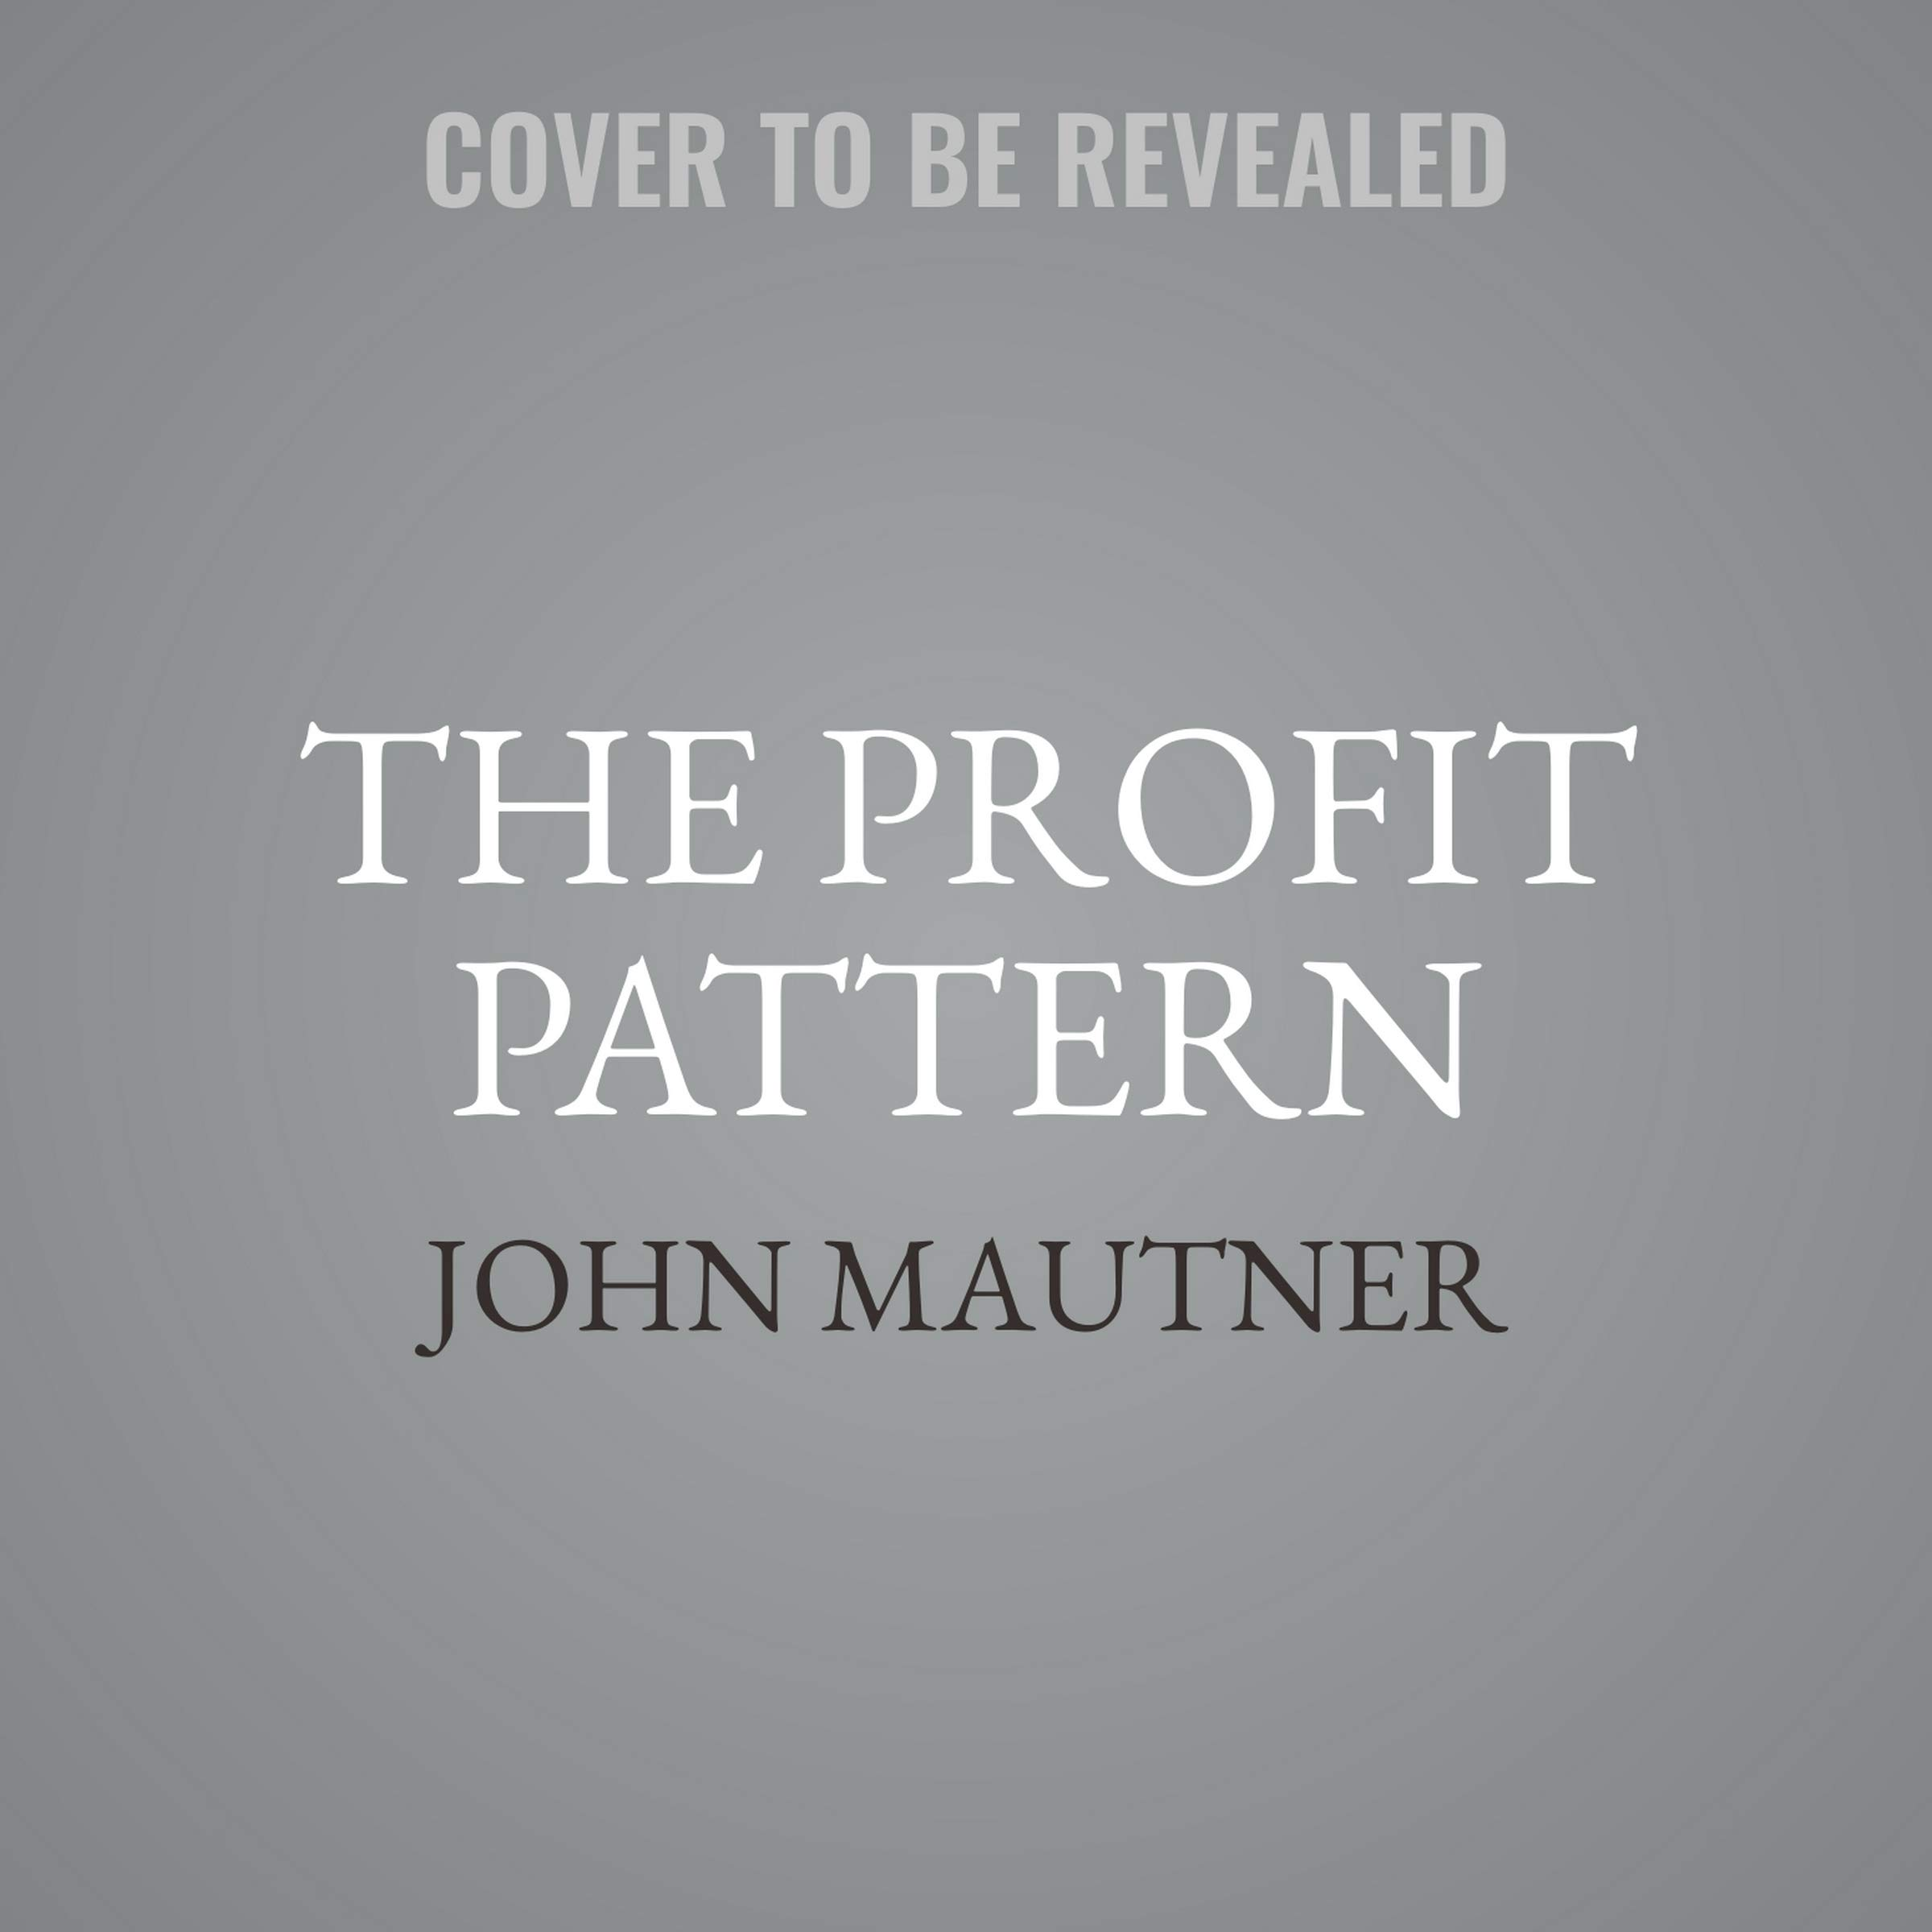 The Profit Pattern: The Top 10 Tools to Transform Your Business: Drive Performance, Empower Your People, Accelerate Productivity and Profitability